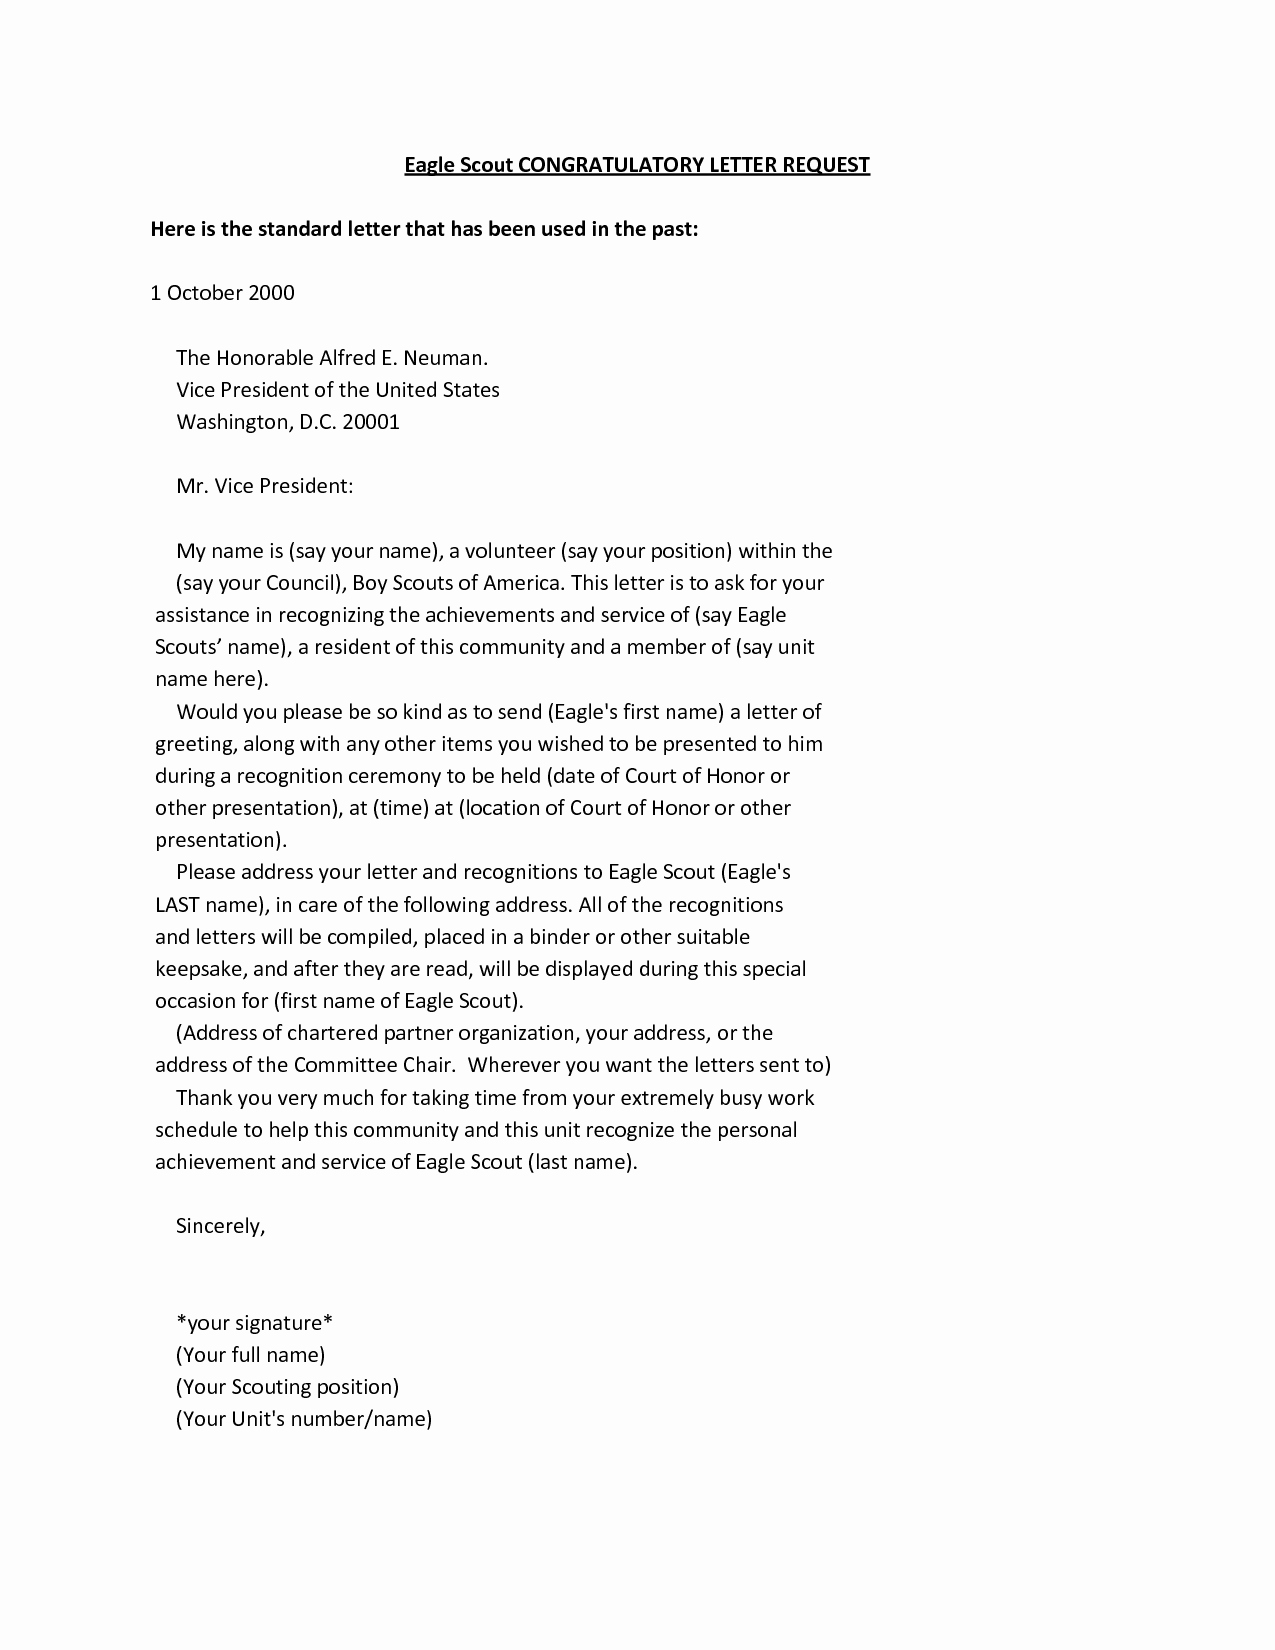 Green Card Reference Letter Example Inspirational Green Card Letter Re Mendation Best Template Collection